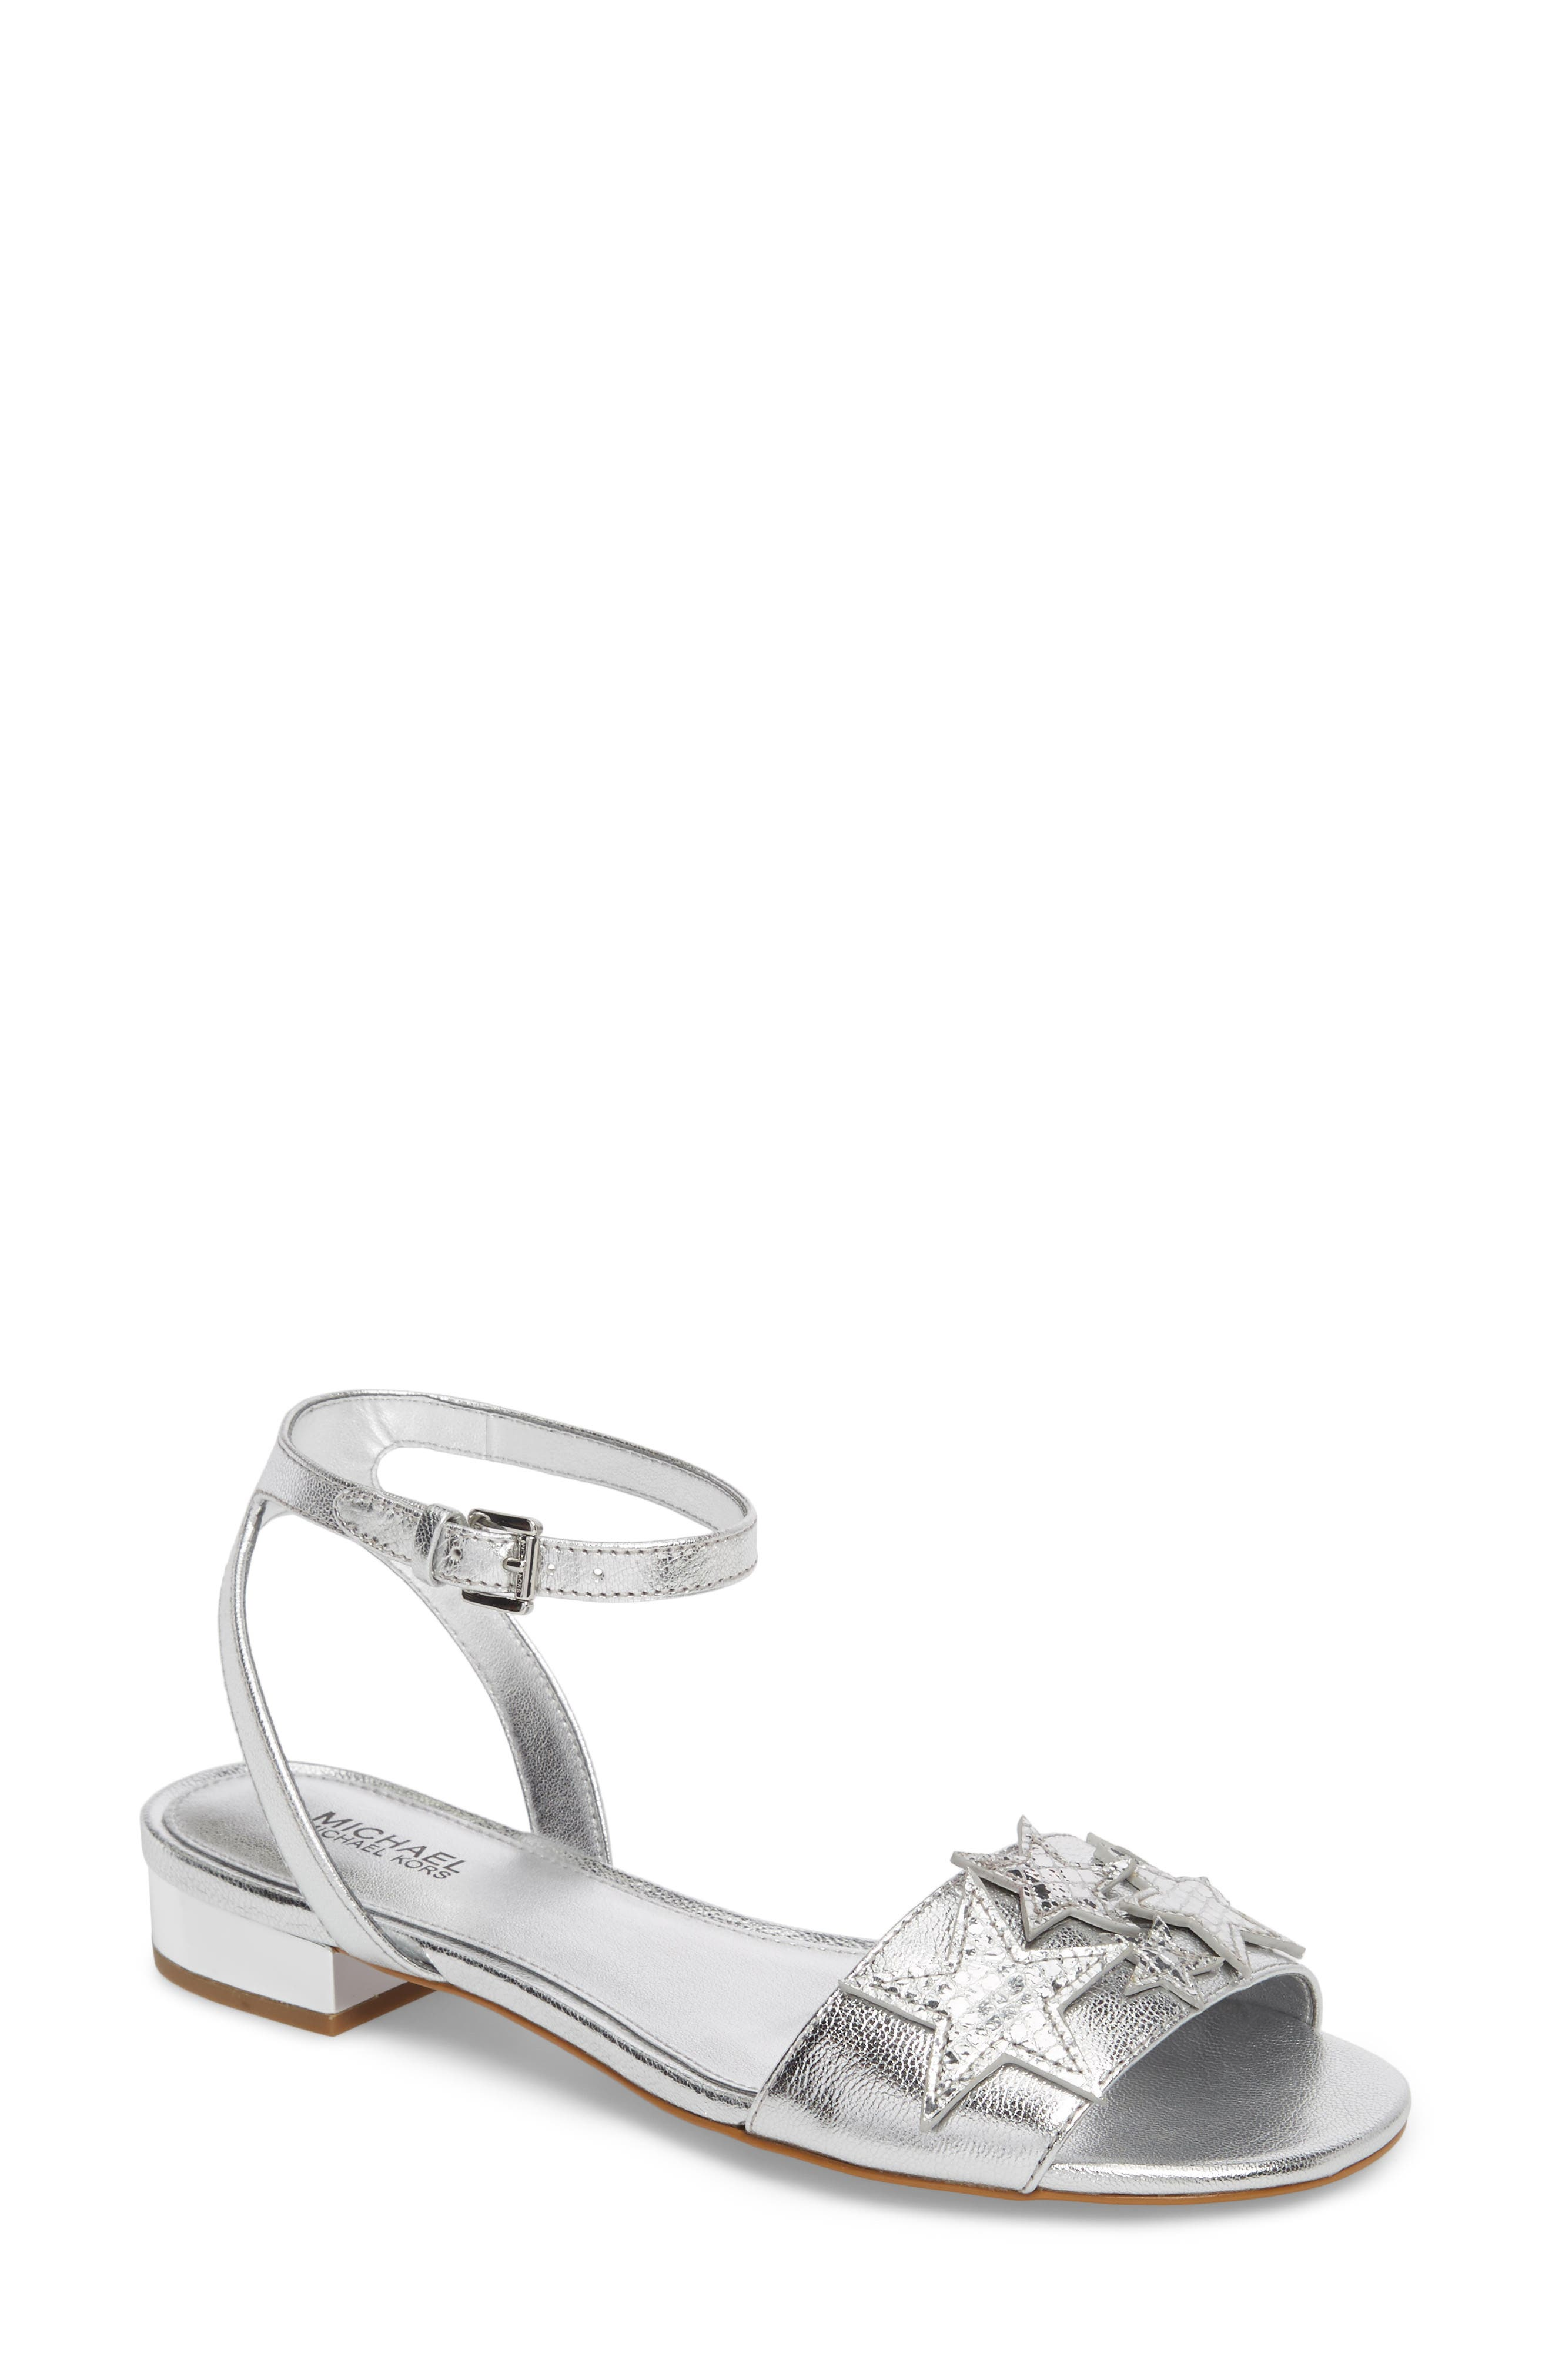 Lexie Star Embellished Sandal,                             Main thumbnail 1, color,                             040